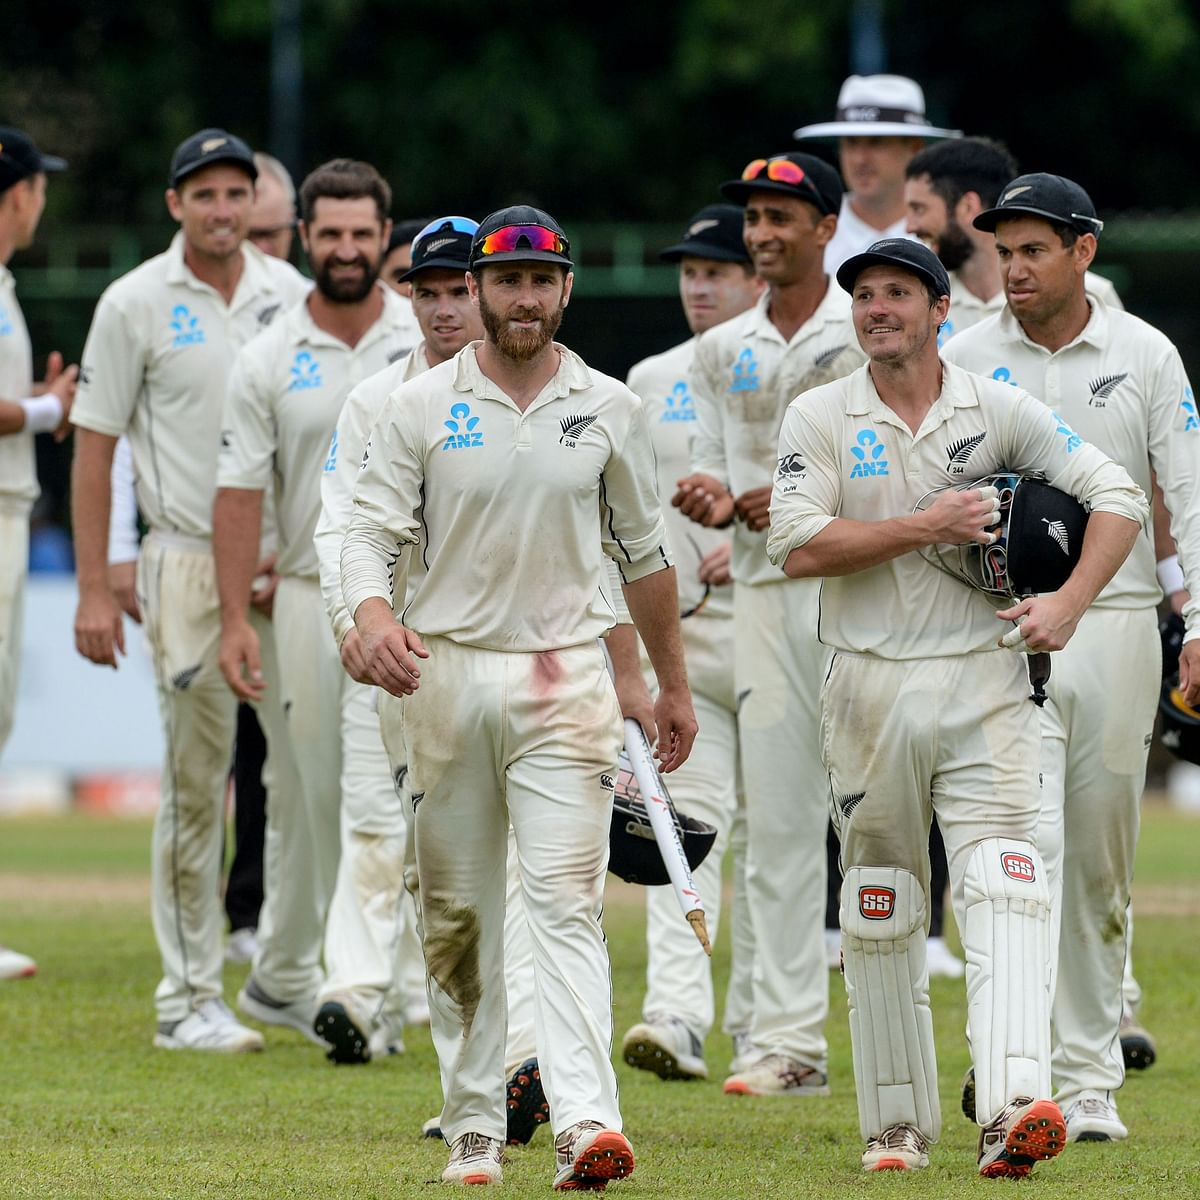 New Zealand win second Test against Sri Lanka by innings and 65 runs